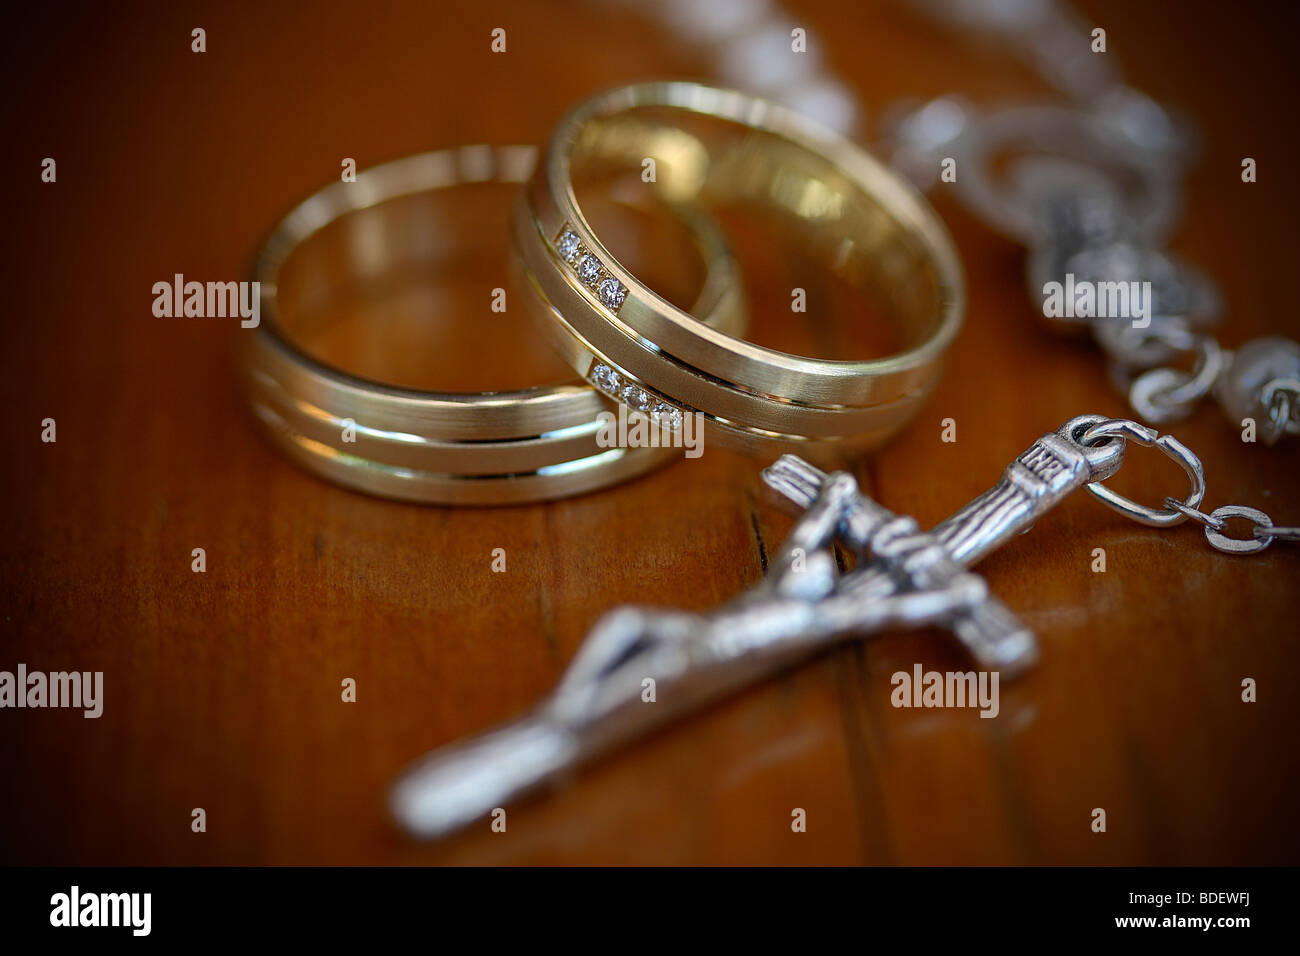 Pair of wedding rings with Christian crucifix on chain Stock Photo